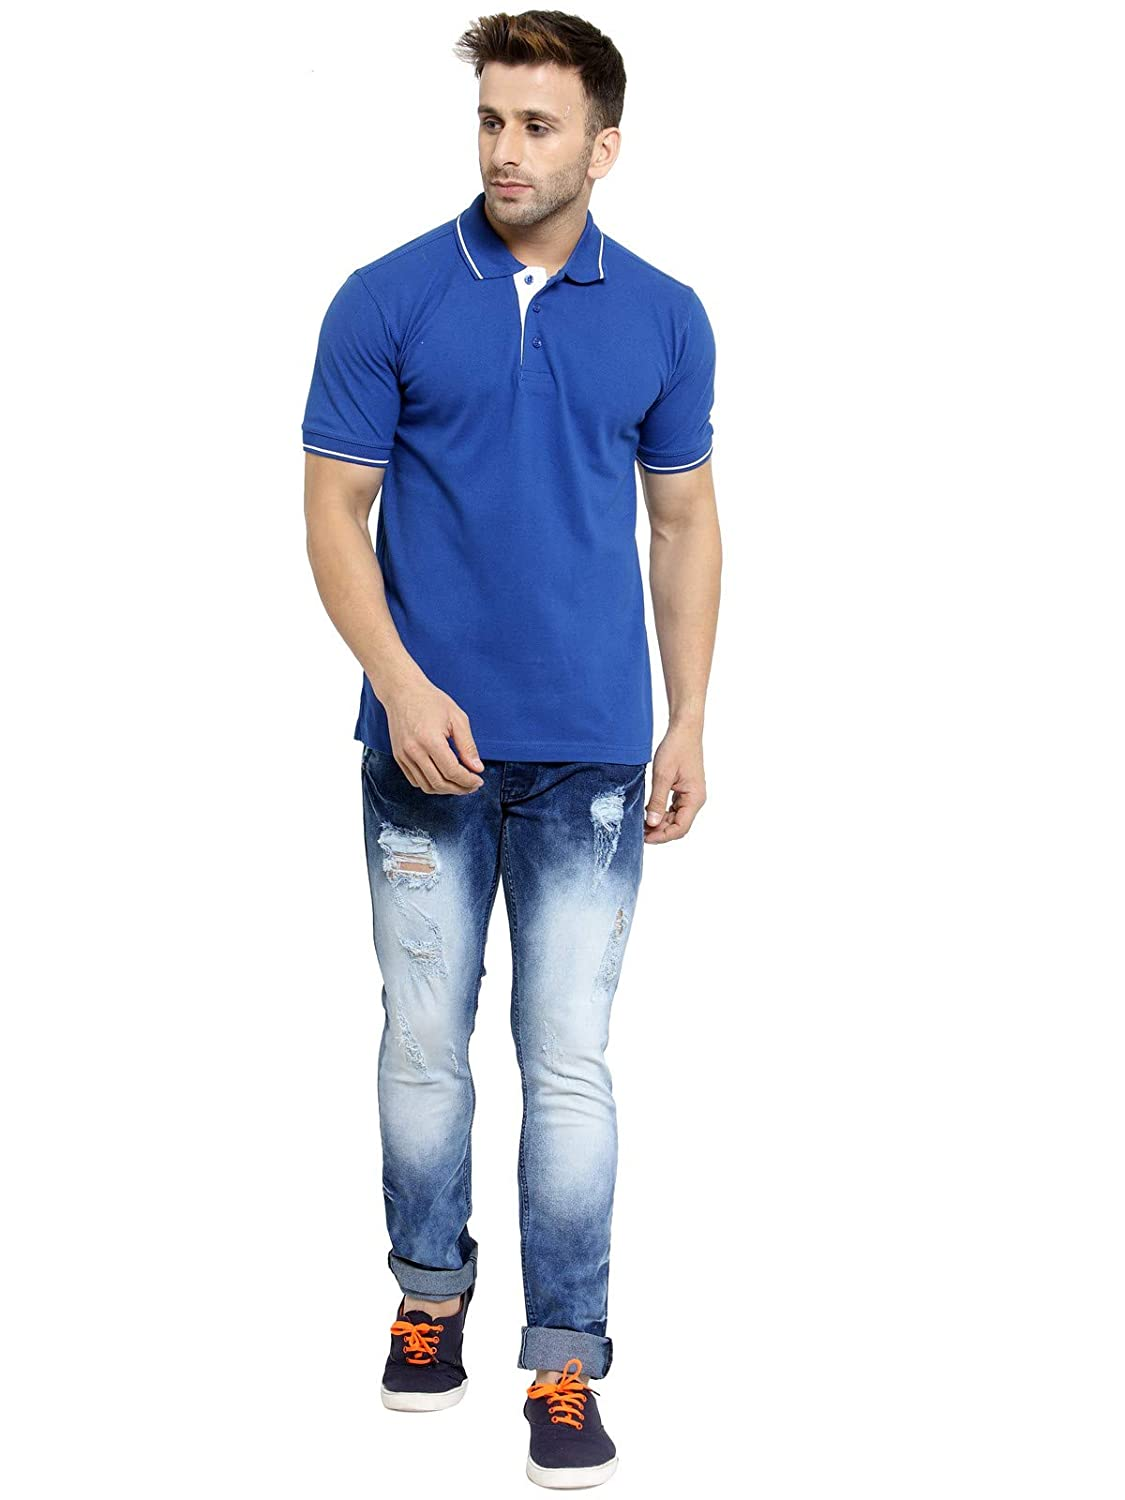 Men's Royal Blue With White Tipping Cotton Polo T-Shirt (S-38)